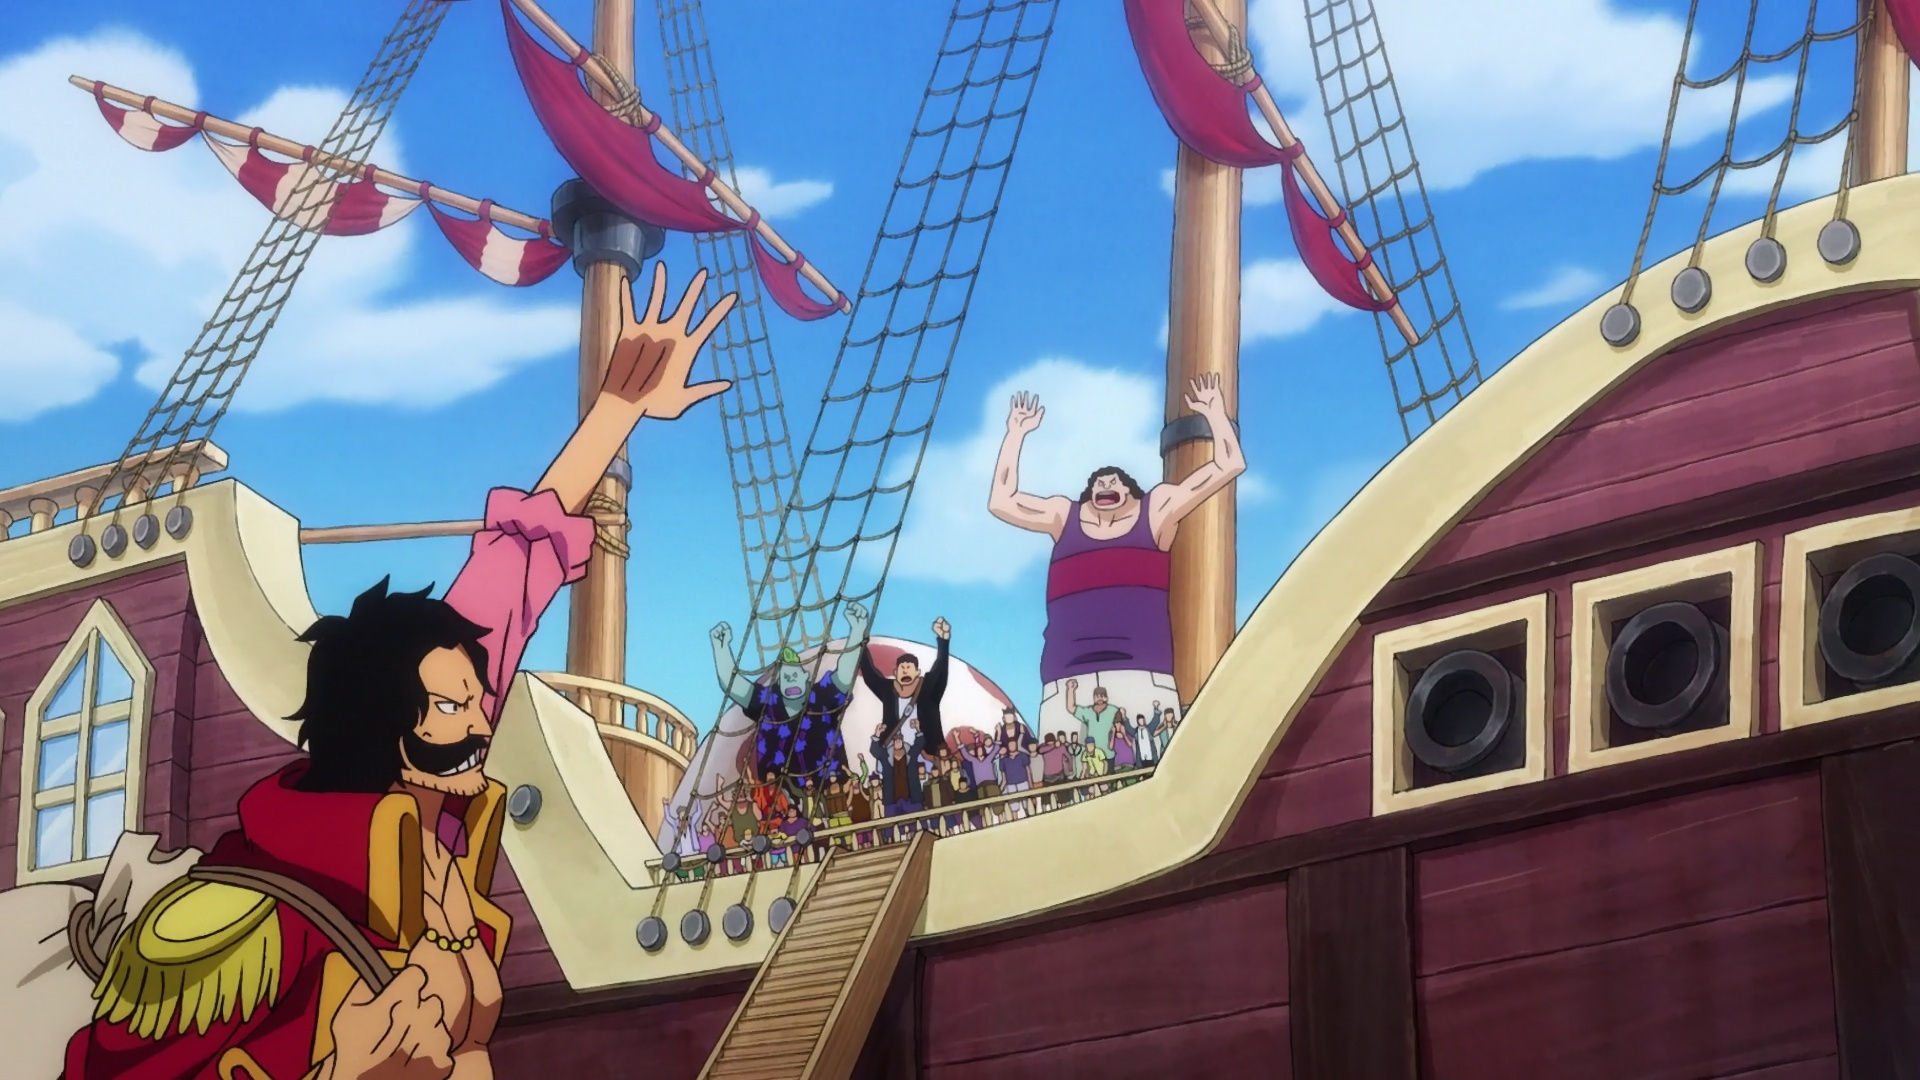 ONE PIECE 970 VOSTFR SD/HD/HD 10BITS/FHD News background